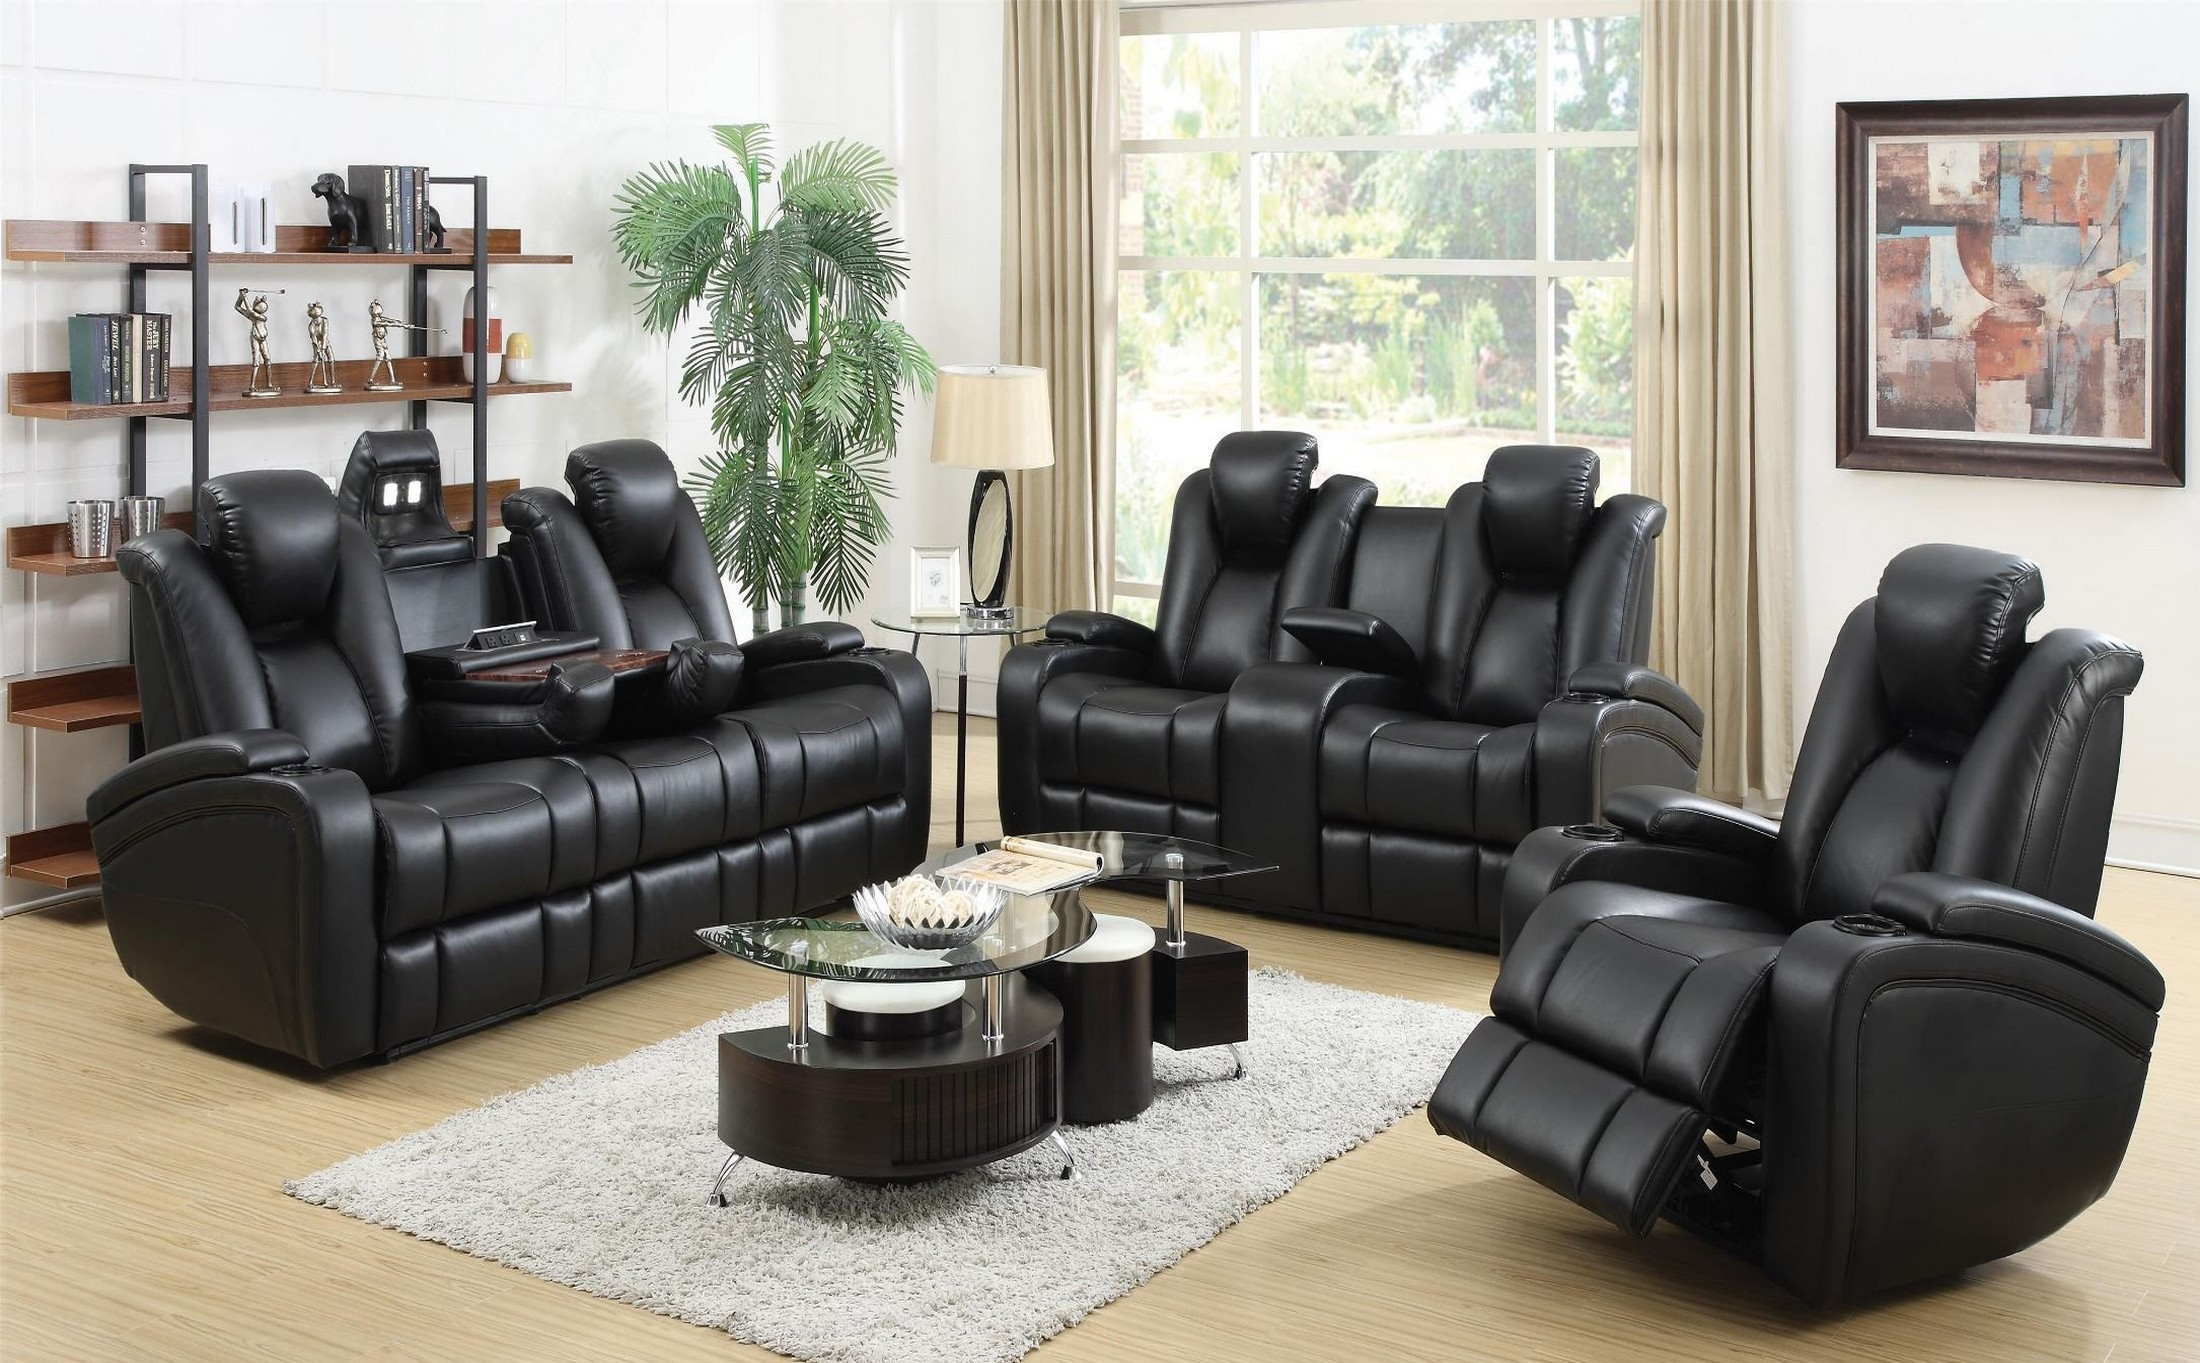 Delange Power Reclining Living Room Set From Coaster 601741P Coleman Furn